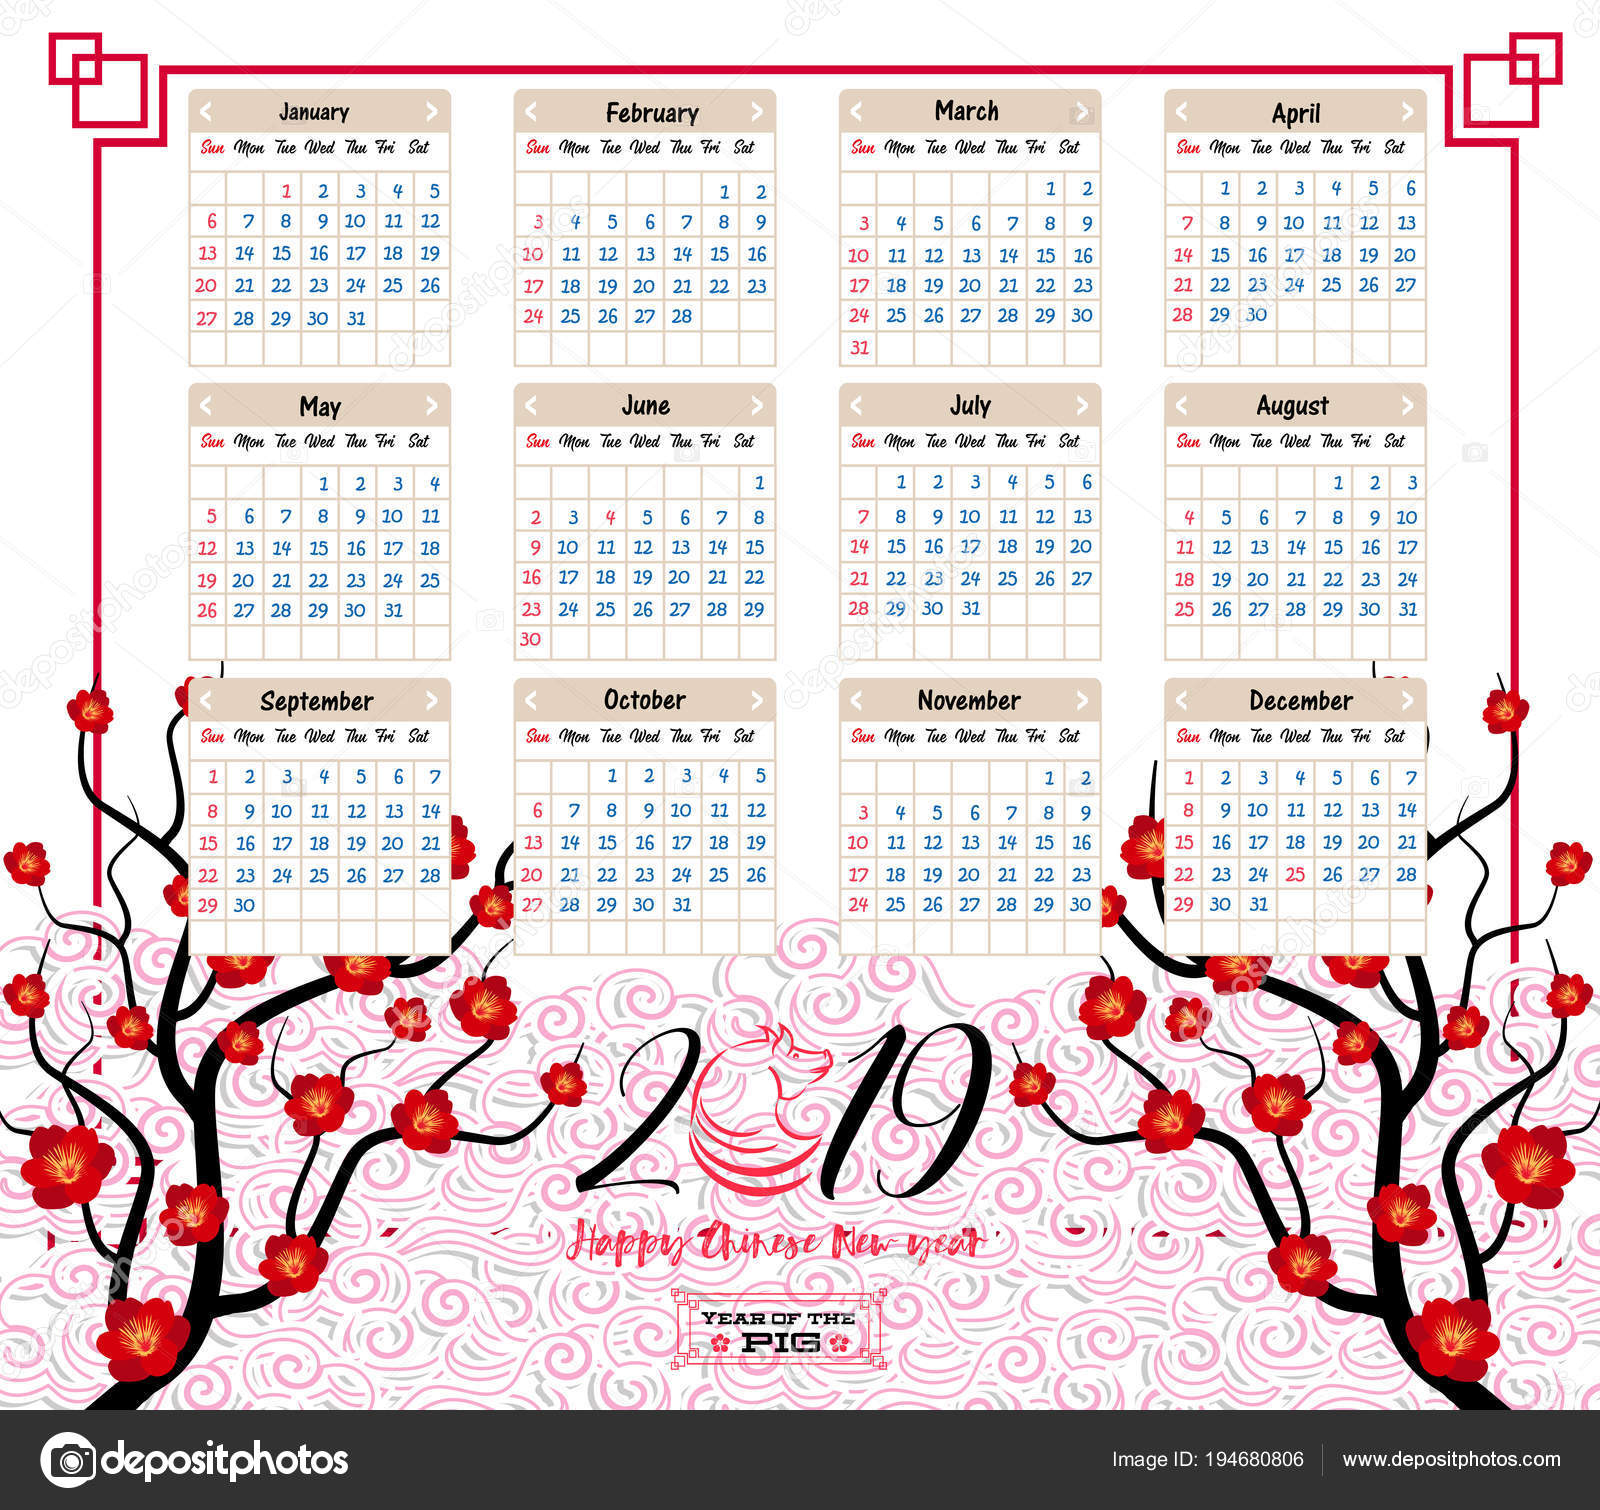 Chinese Calendar 2019 Year Of The With Happy New Pig Stock